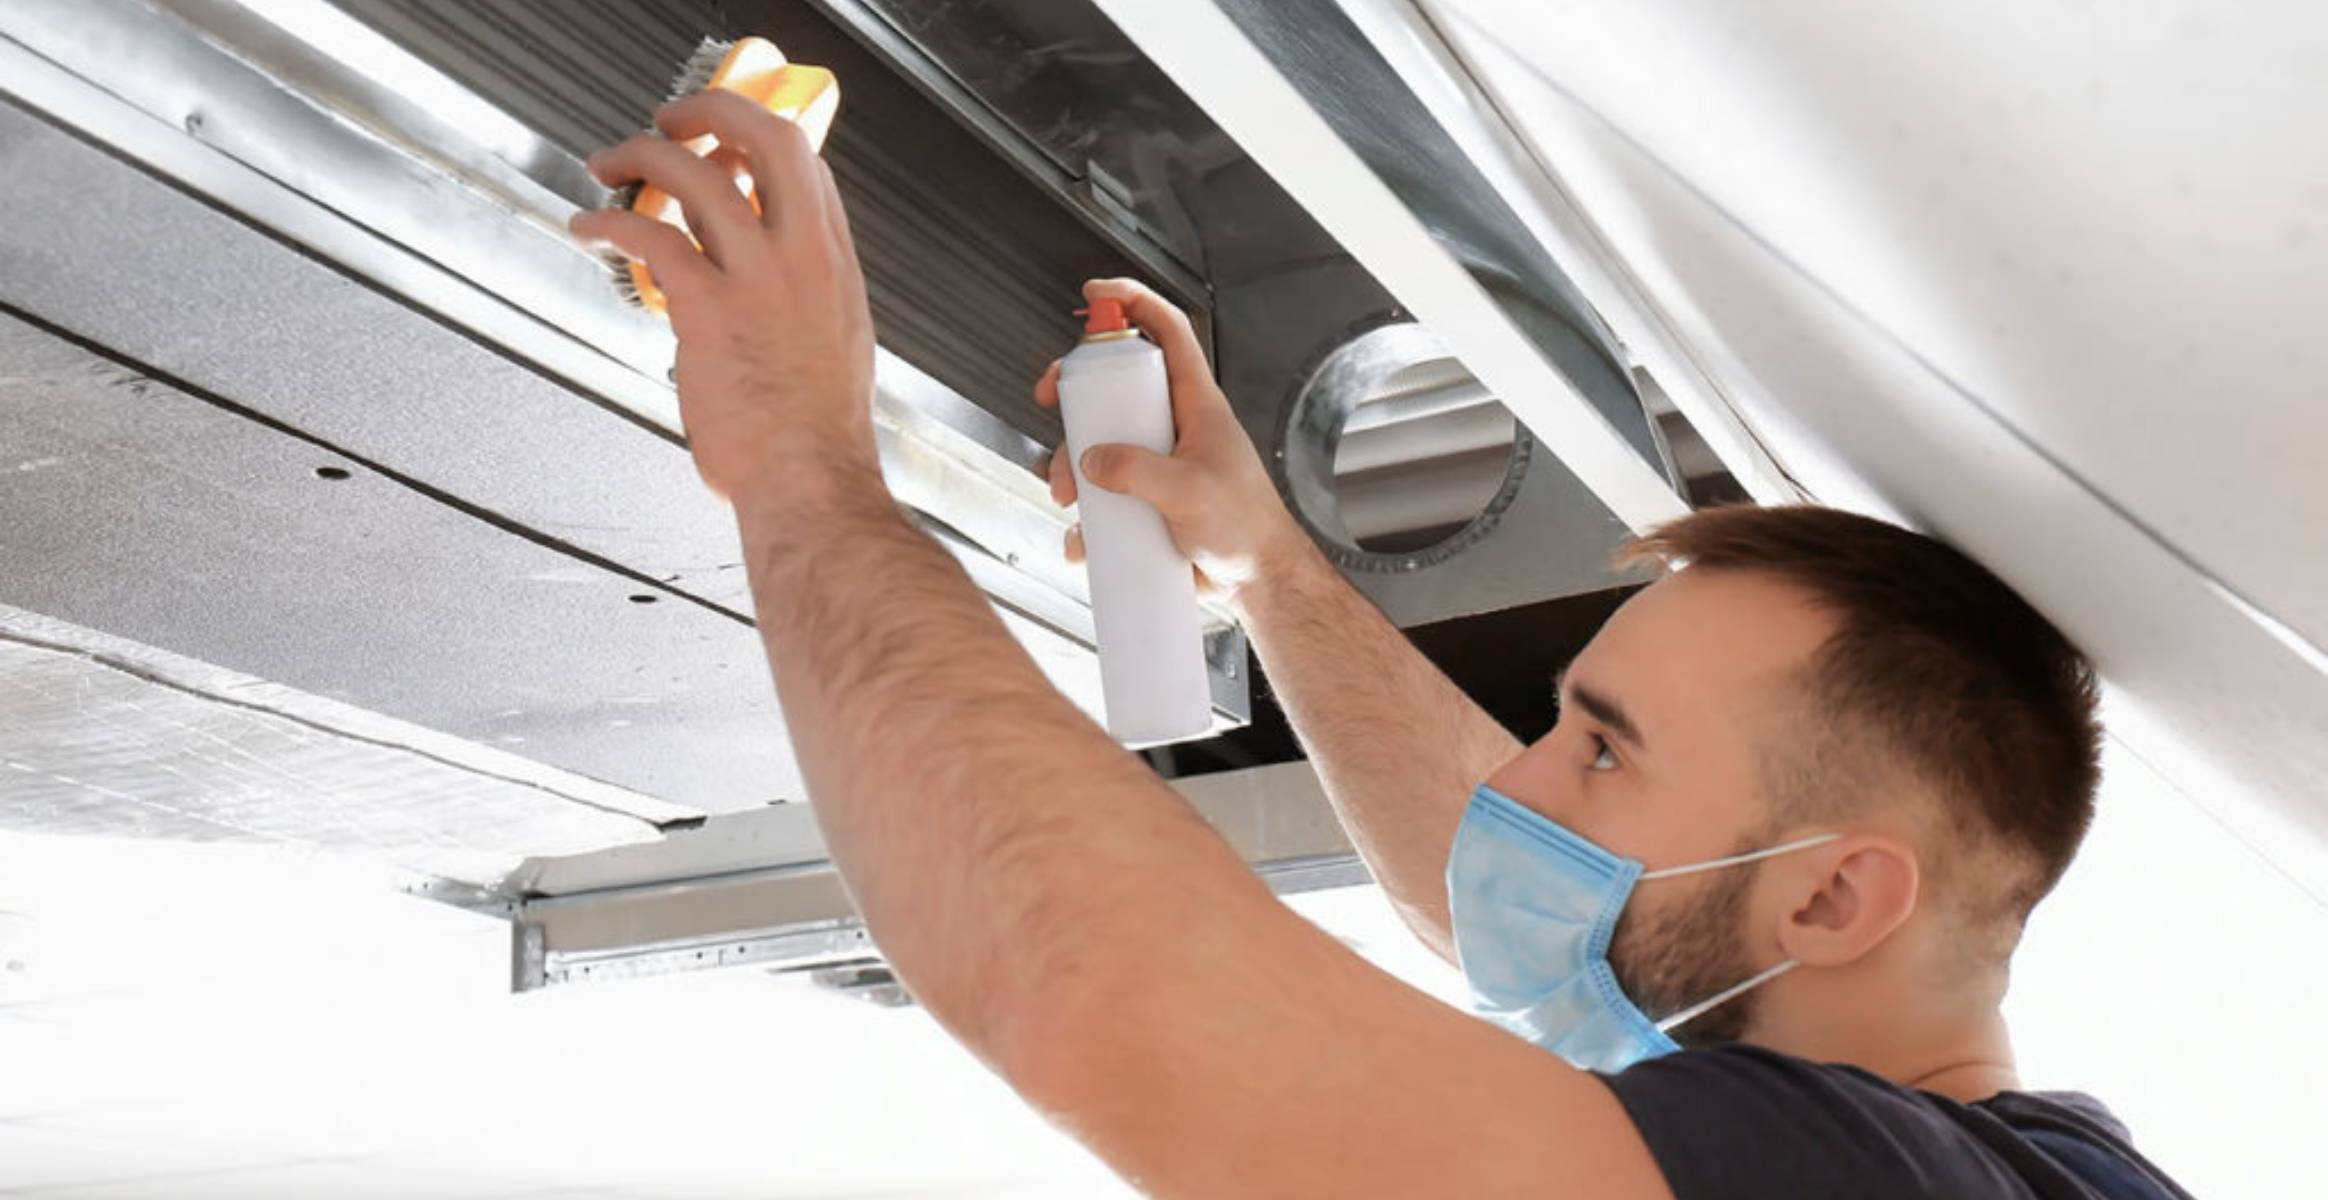 Best ways to clean Air Ducts